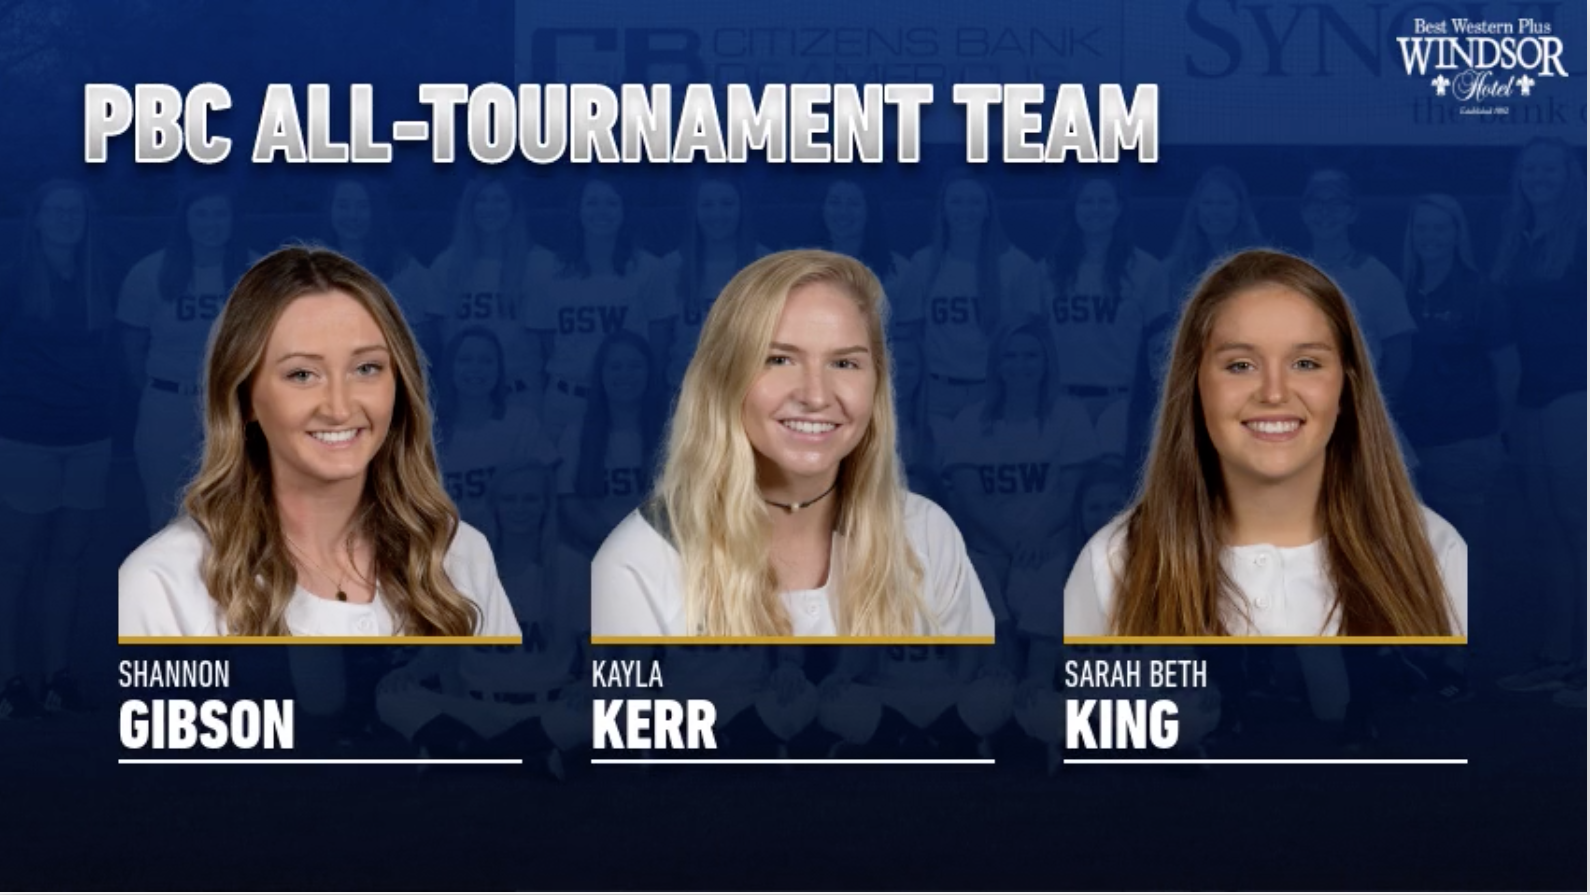 Gibson, Kerr & King Named To All-Tournament Team